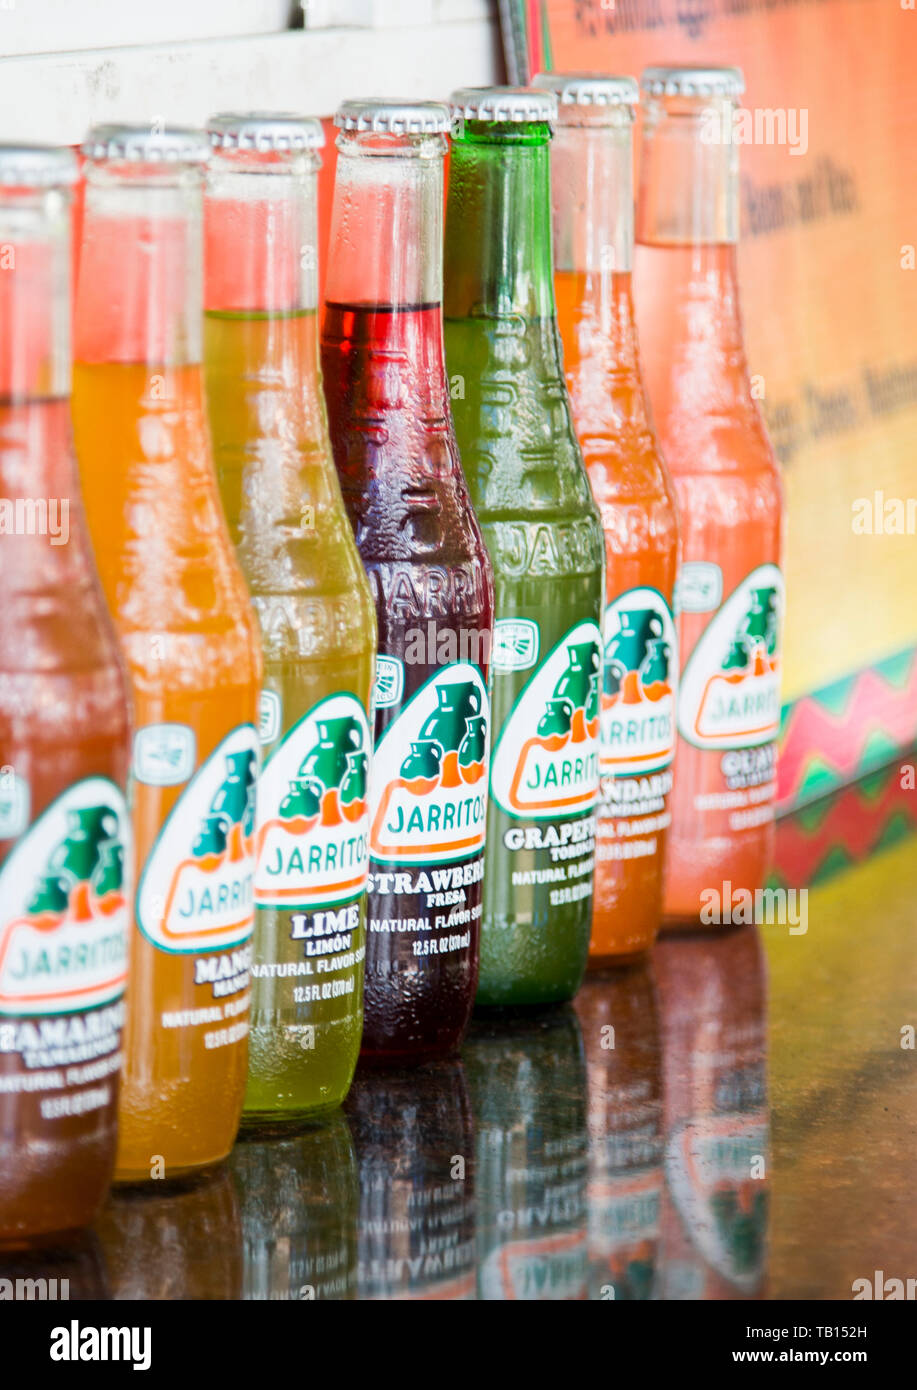 Mexican Food Truck Stock Photos & Mexican Food Truck Stock